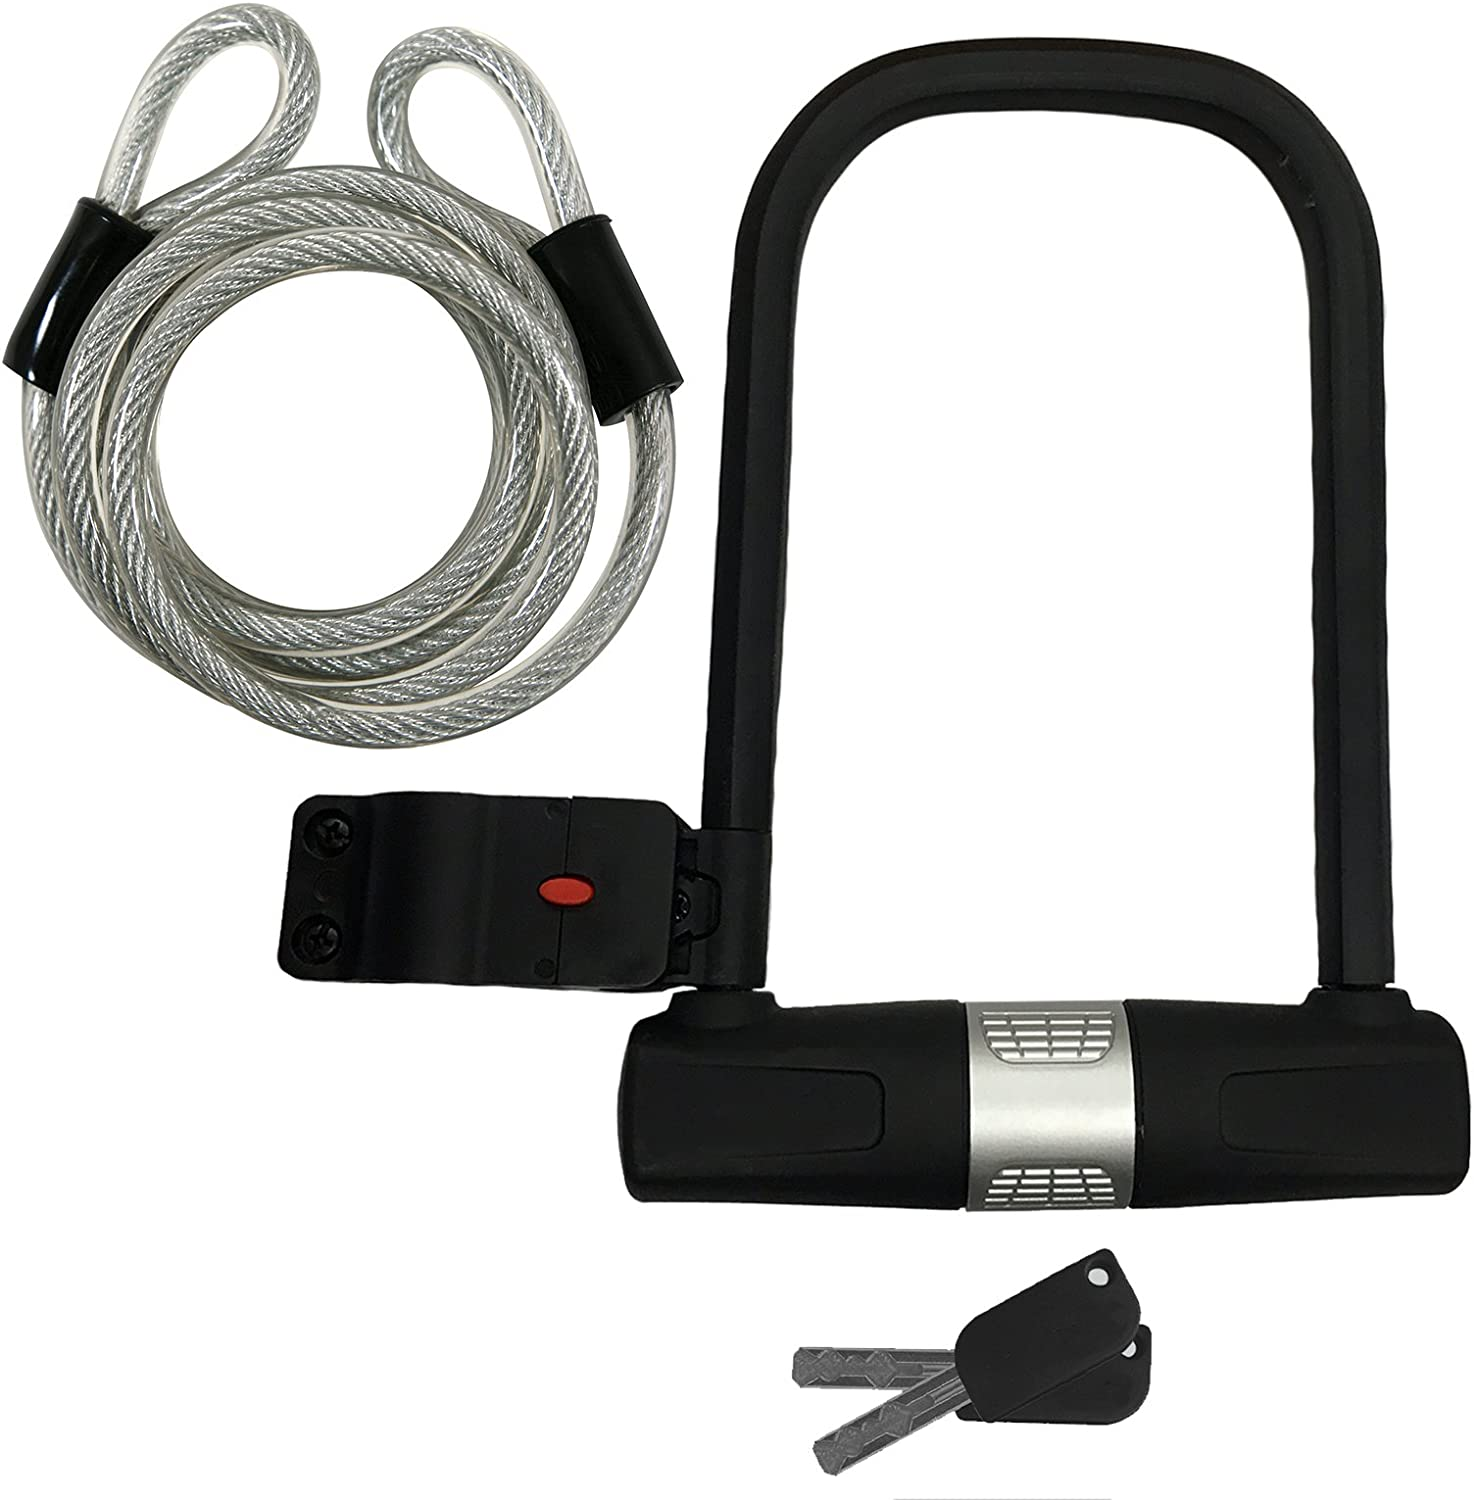 U-Lock Bike Lock Heavy Duty High Security with 6-ft. Security Cable and Mounting Bracket